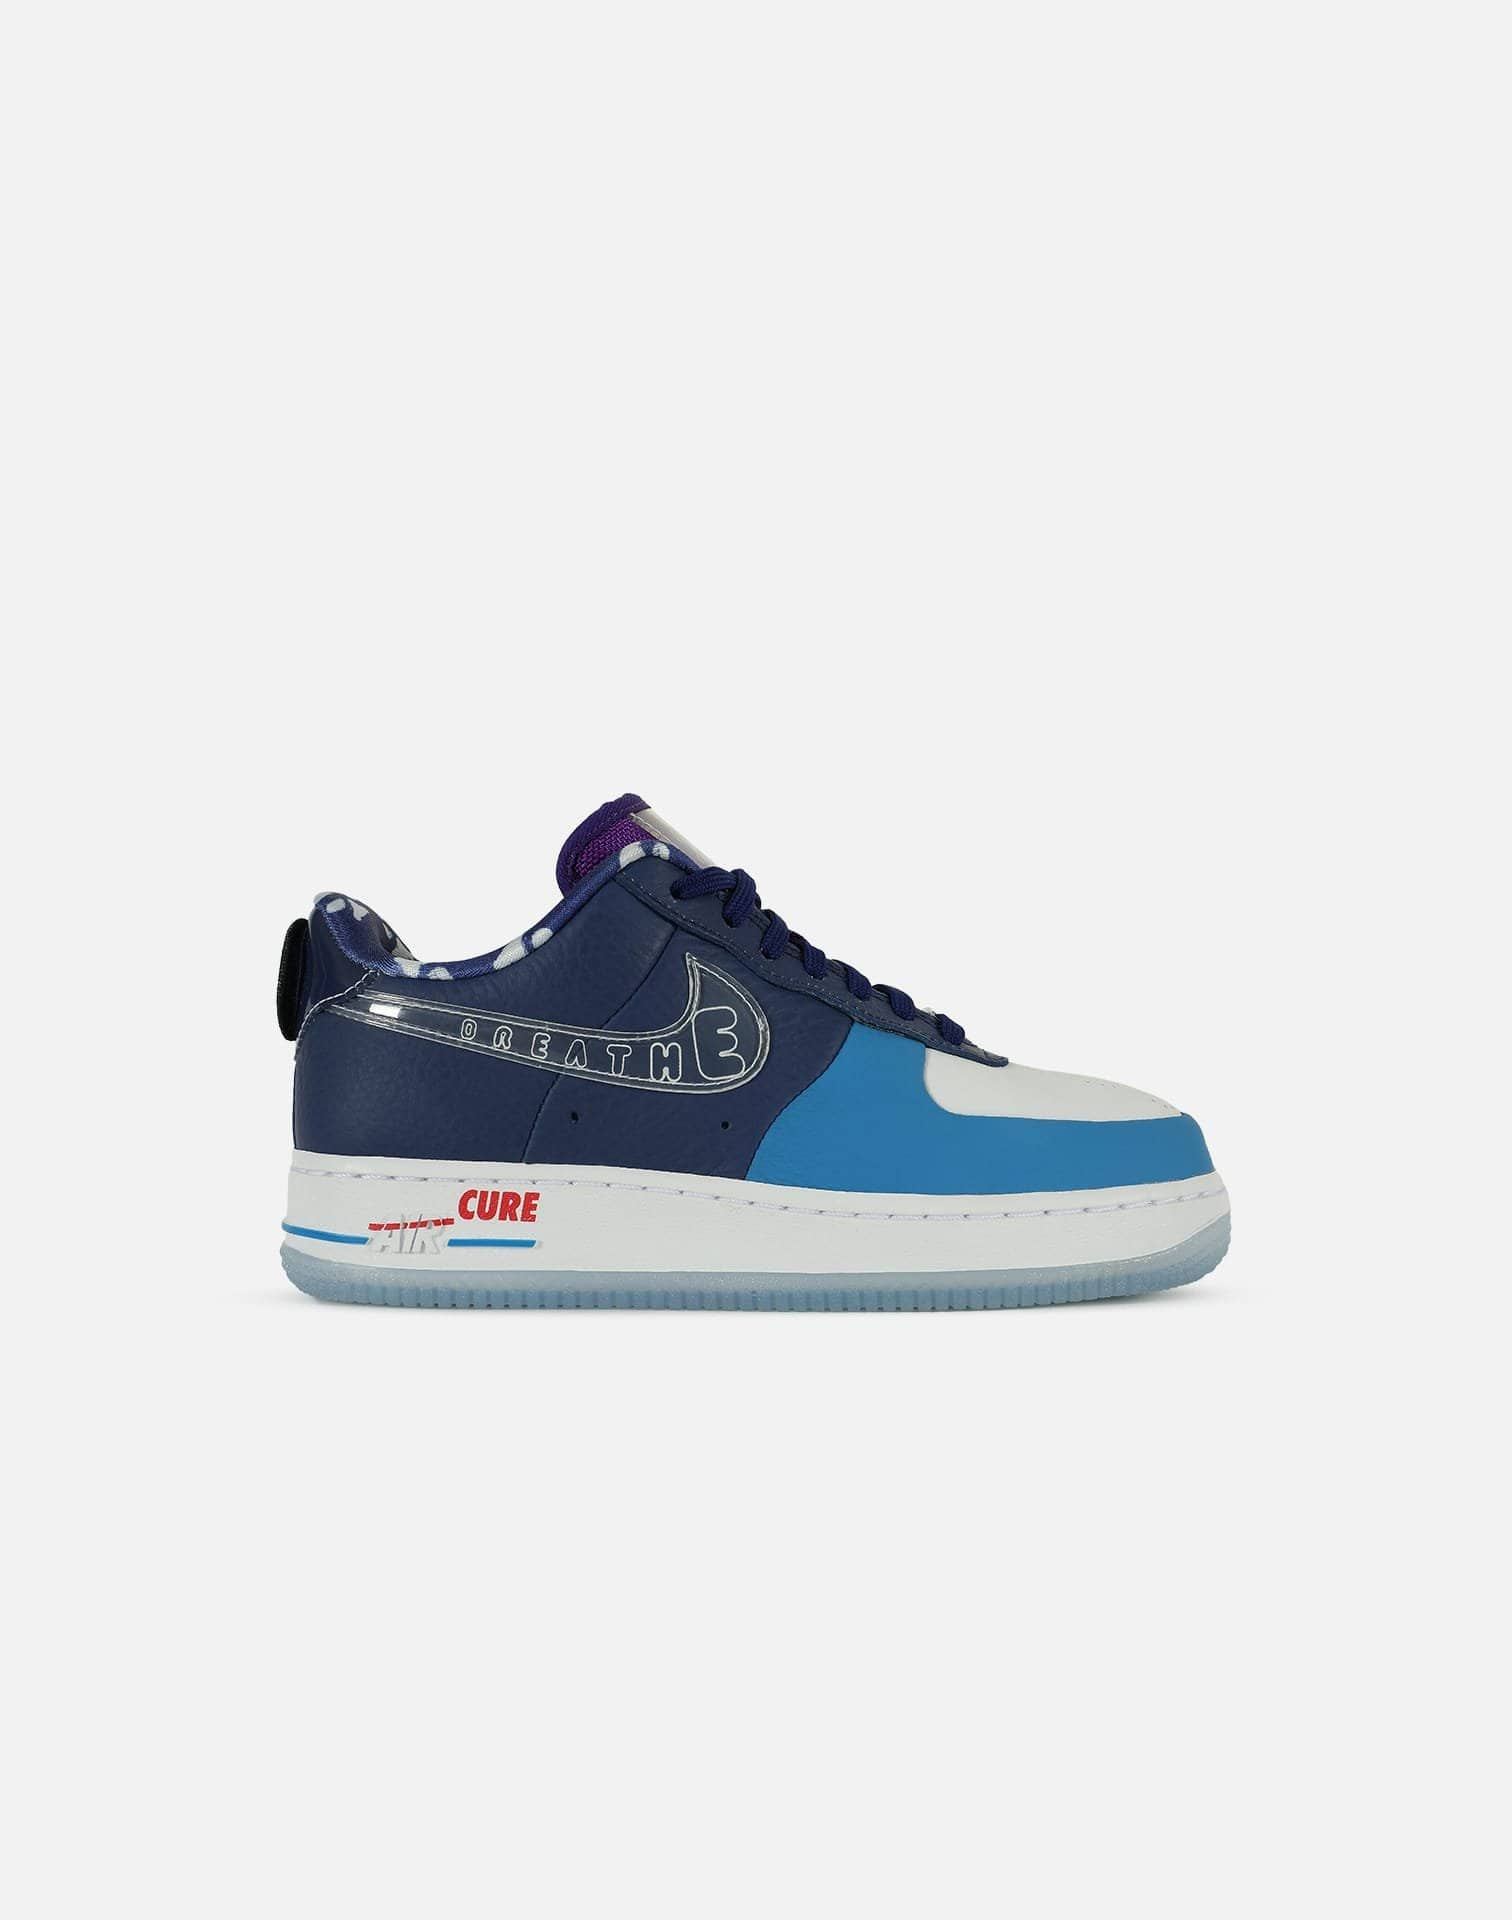 Nike Air Force 1 Low 'Doernbecher Freestyle' Grade-School